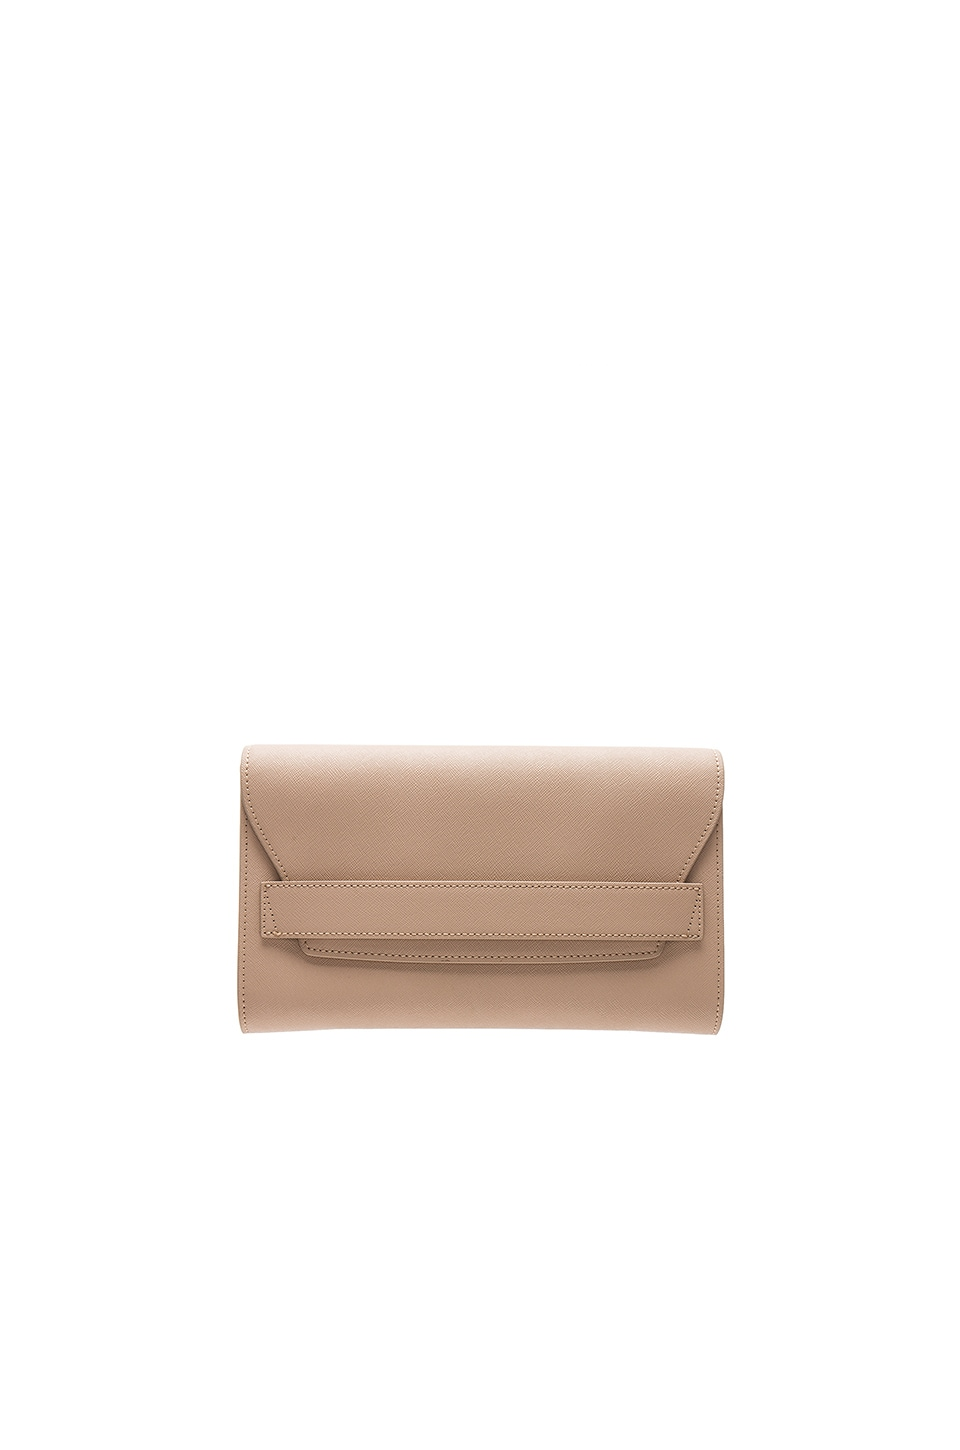 the daily edited Fold Clutch in Taupe